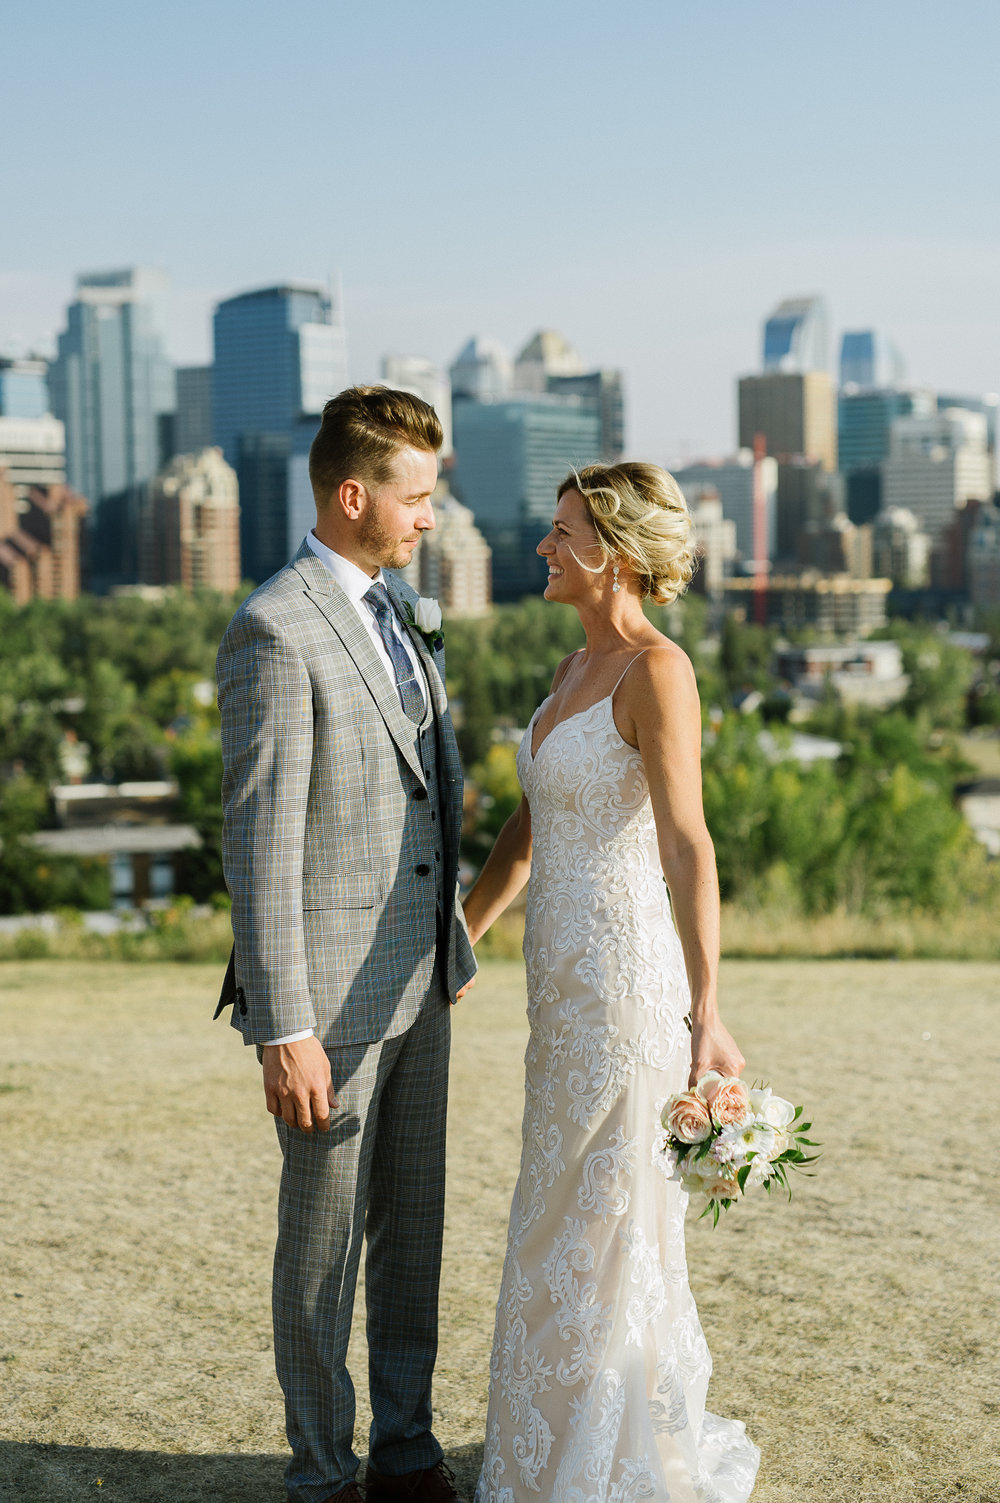 Calgary_Wedding_Photography_Melanie_Jeremy_Elopement_2017 0127.jpg